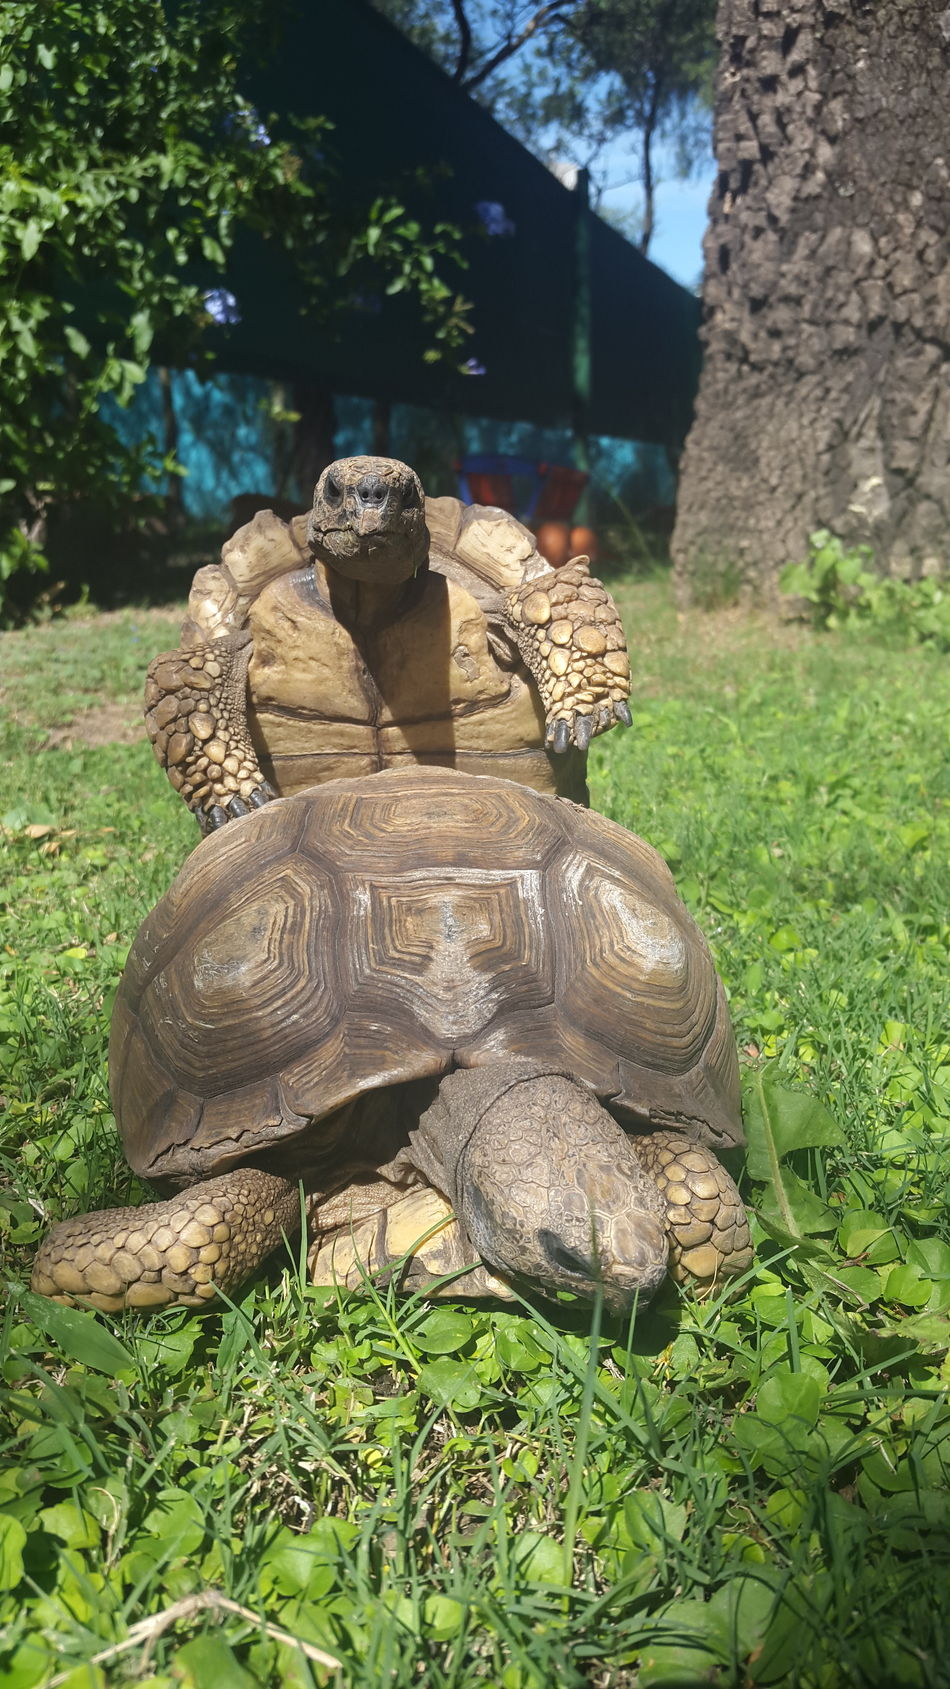 Sunlight Tree Nature Grass Field Outdoors Growth No People One Animal Animal Themes Beauty In Nature Day Animals In The Wild Reptile Close-up Tortoise Copulating Tourtles